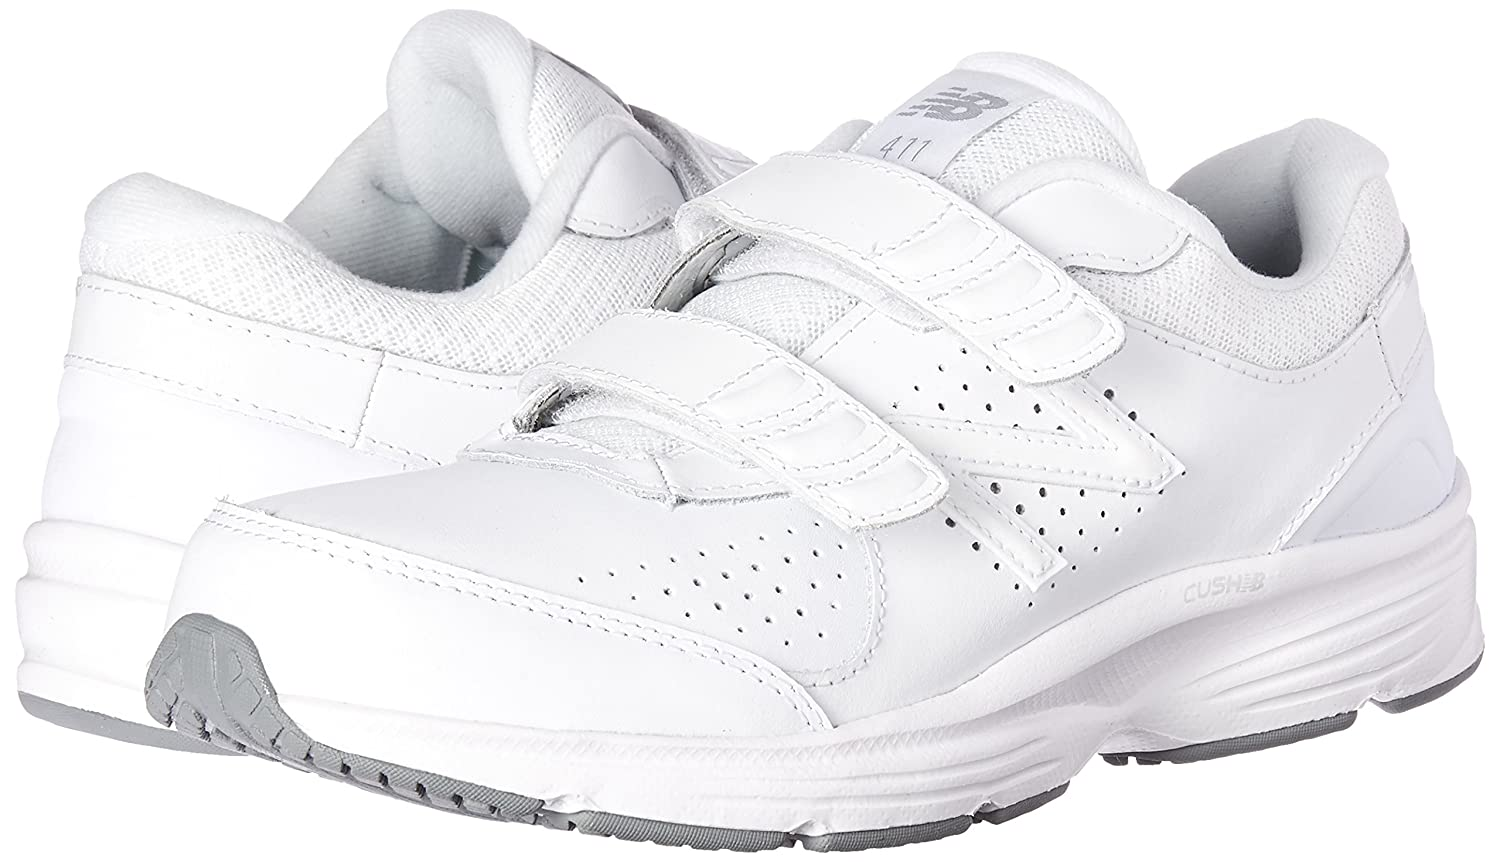 New Balance Women's WW411v2 Hook and Loop Walking Shoe B00V3QSPNE 8 D US|White